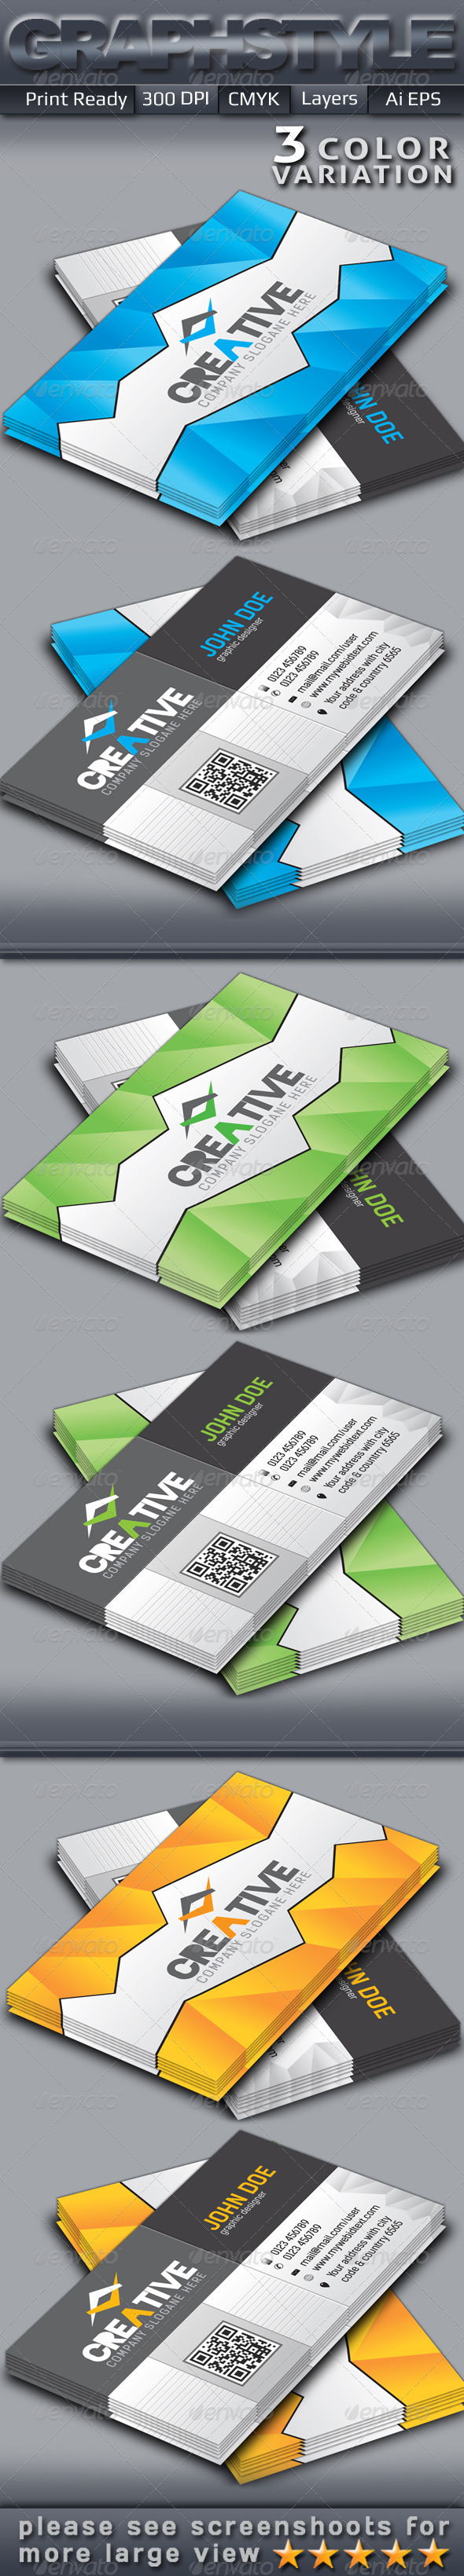 GraphicRiver Creative Business Cards 2 5405907